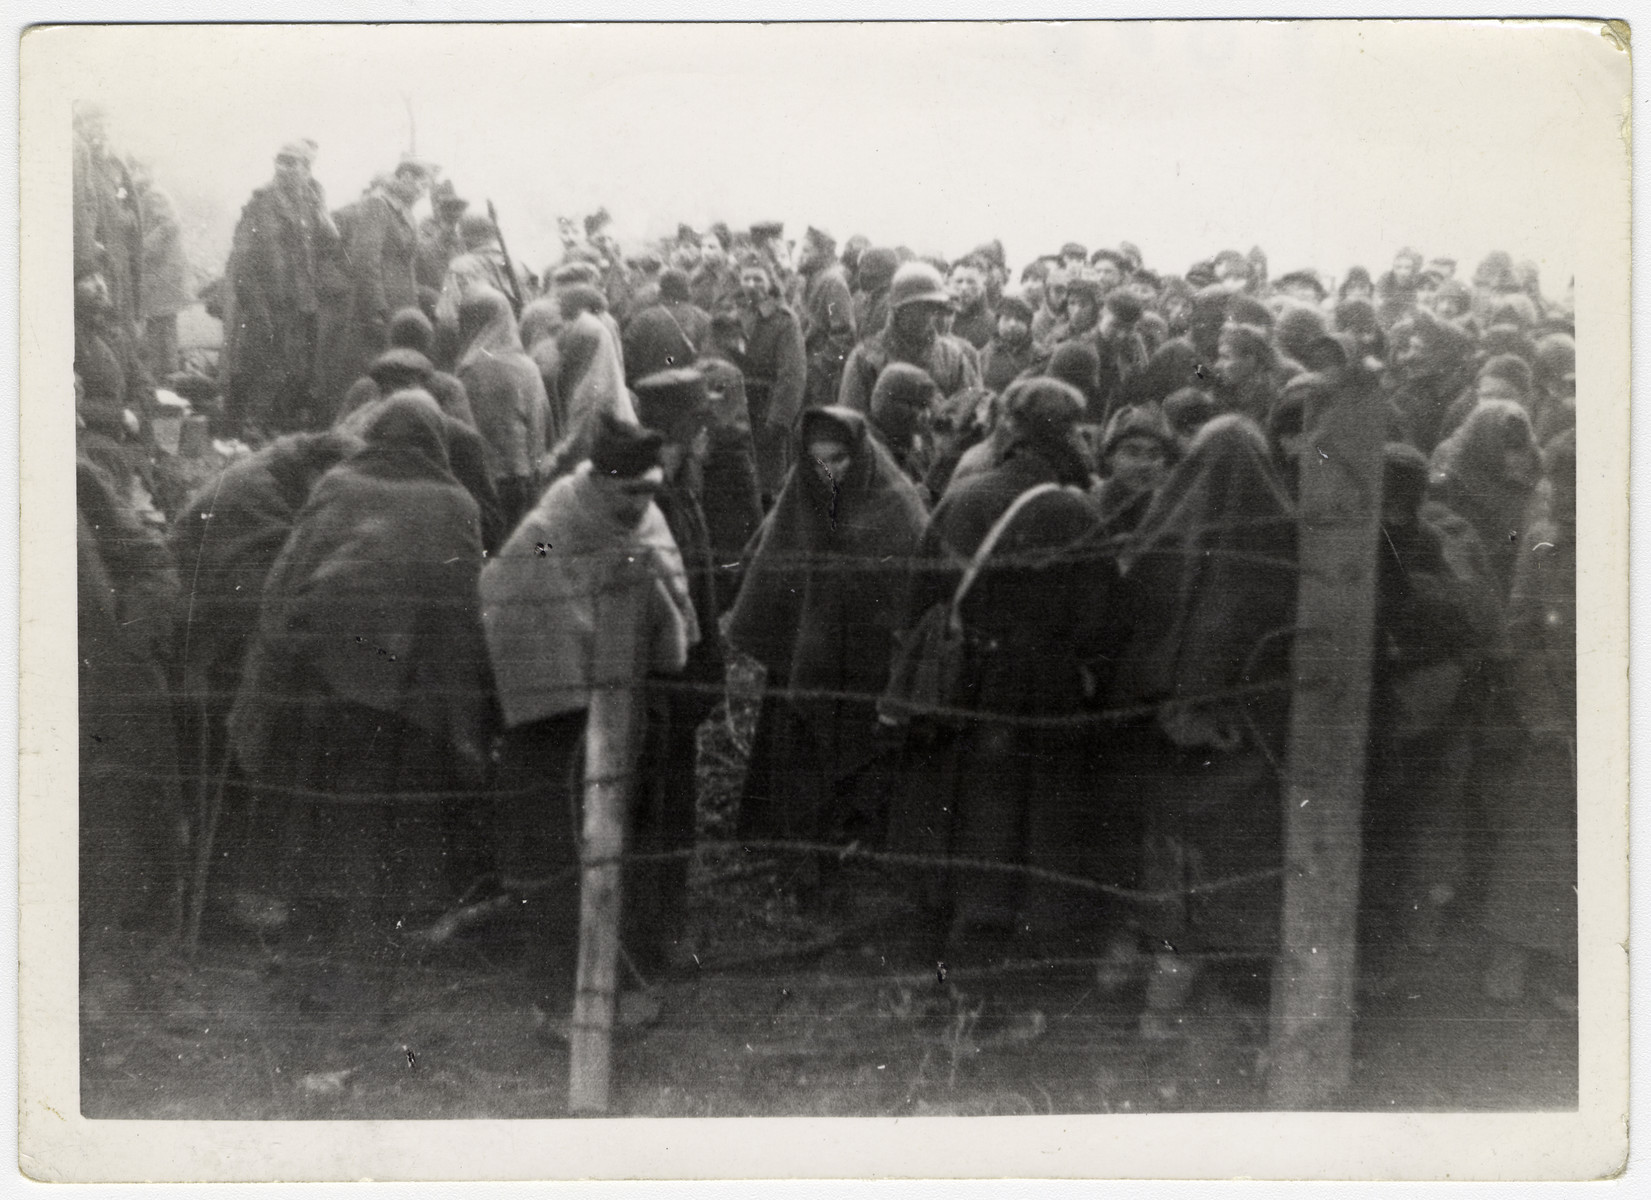 Survivors wearing blankets for warmth crowd together behind a barbed wire fence shortly after liberation.